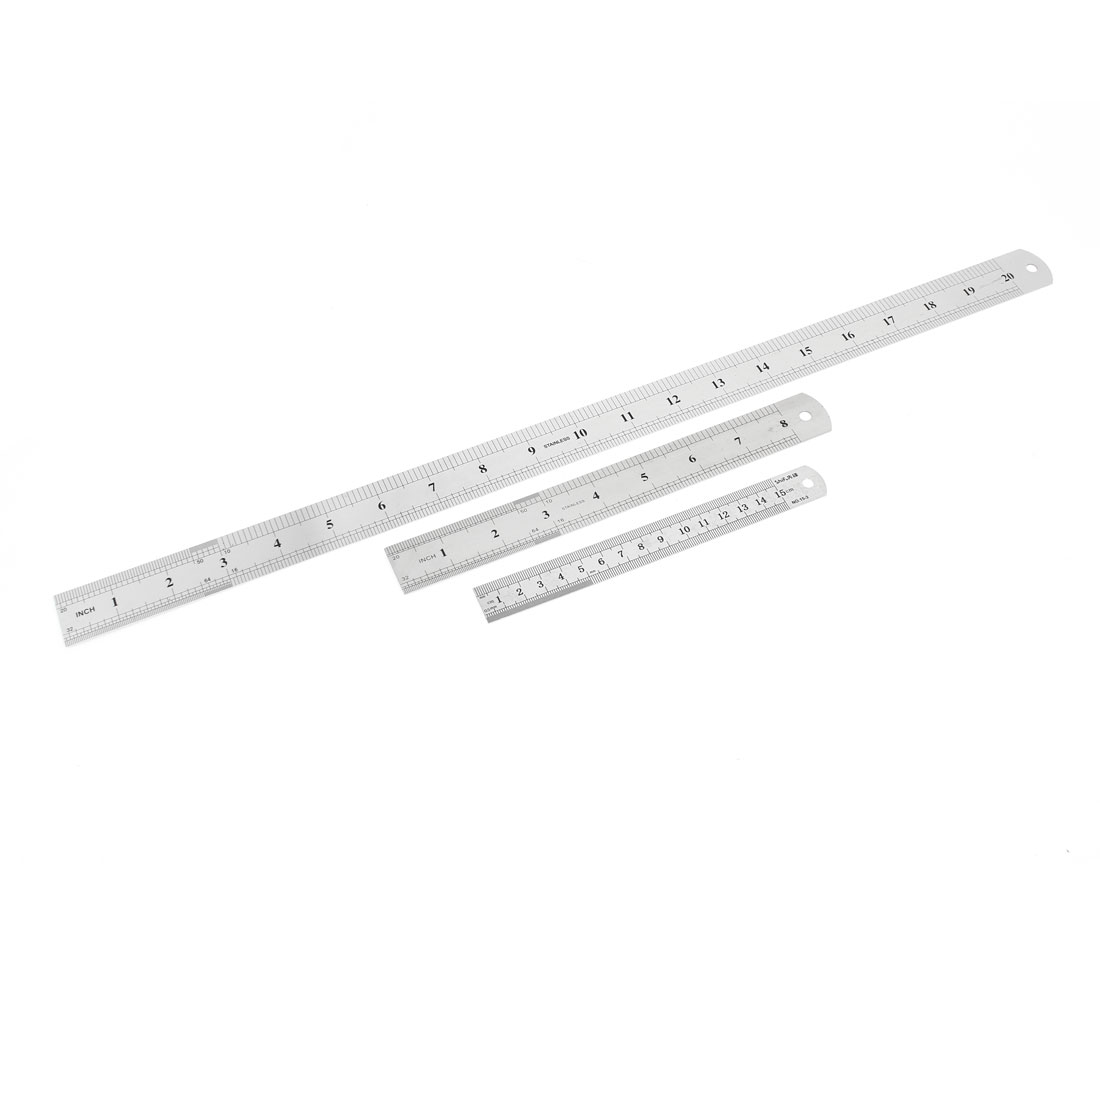 3 in 1 15cm 20cm 50cm Double Sides Students Metric Straight Ruler Silver Tone